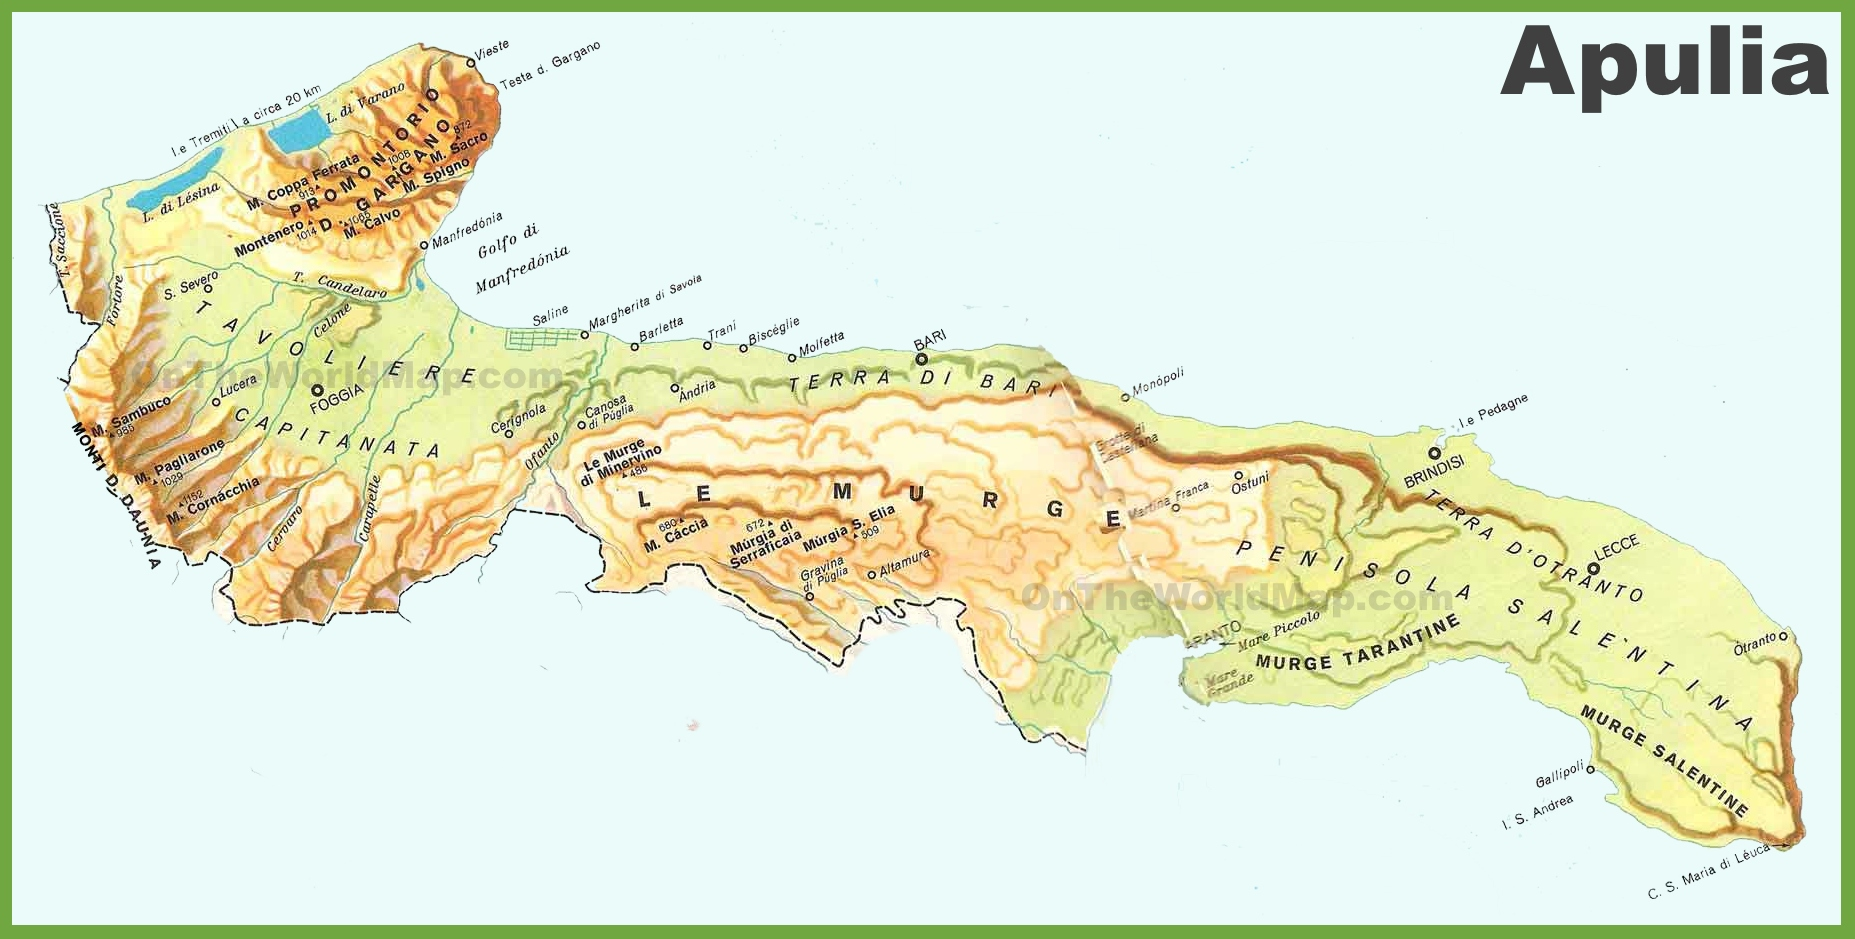 Apulia physical map